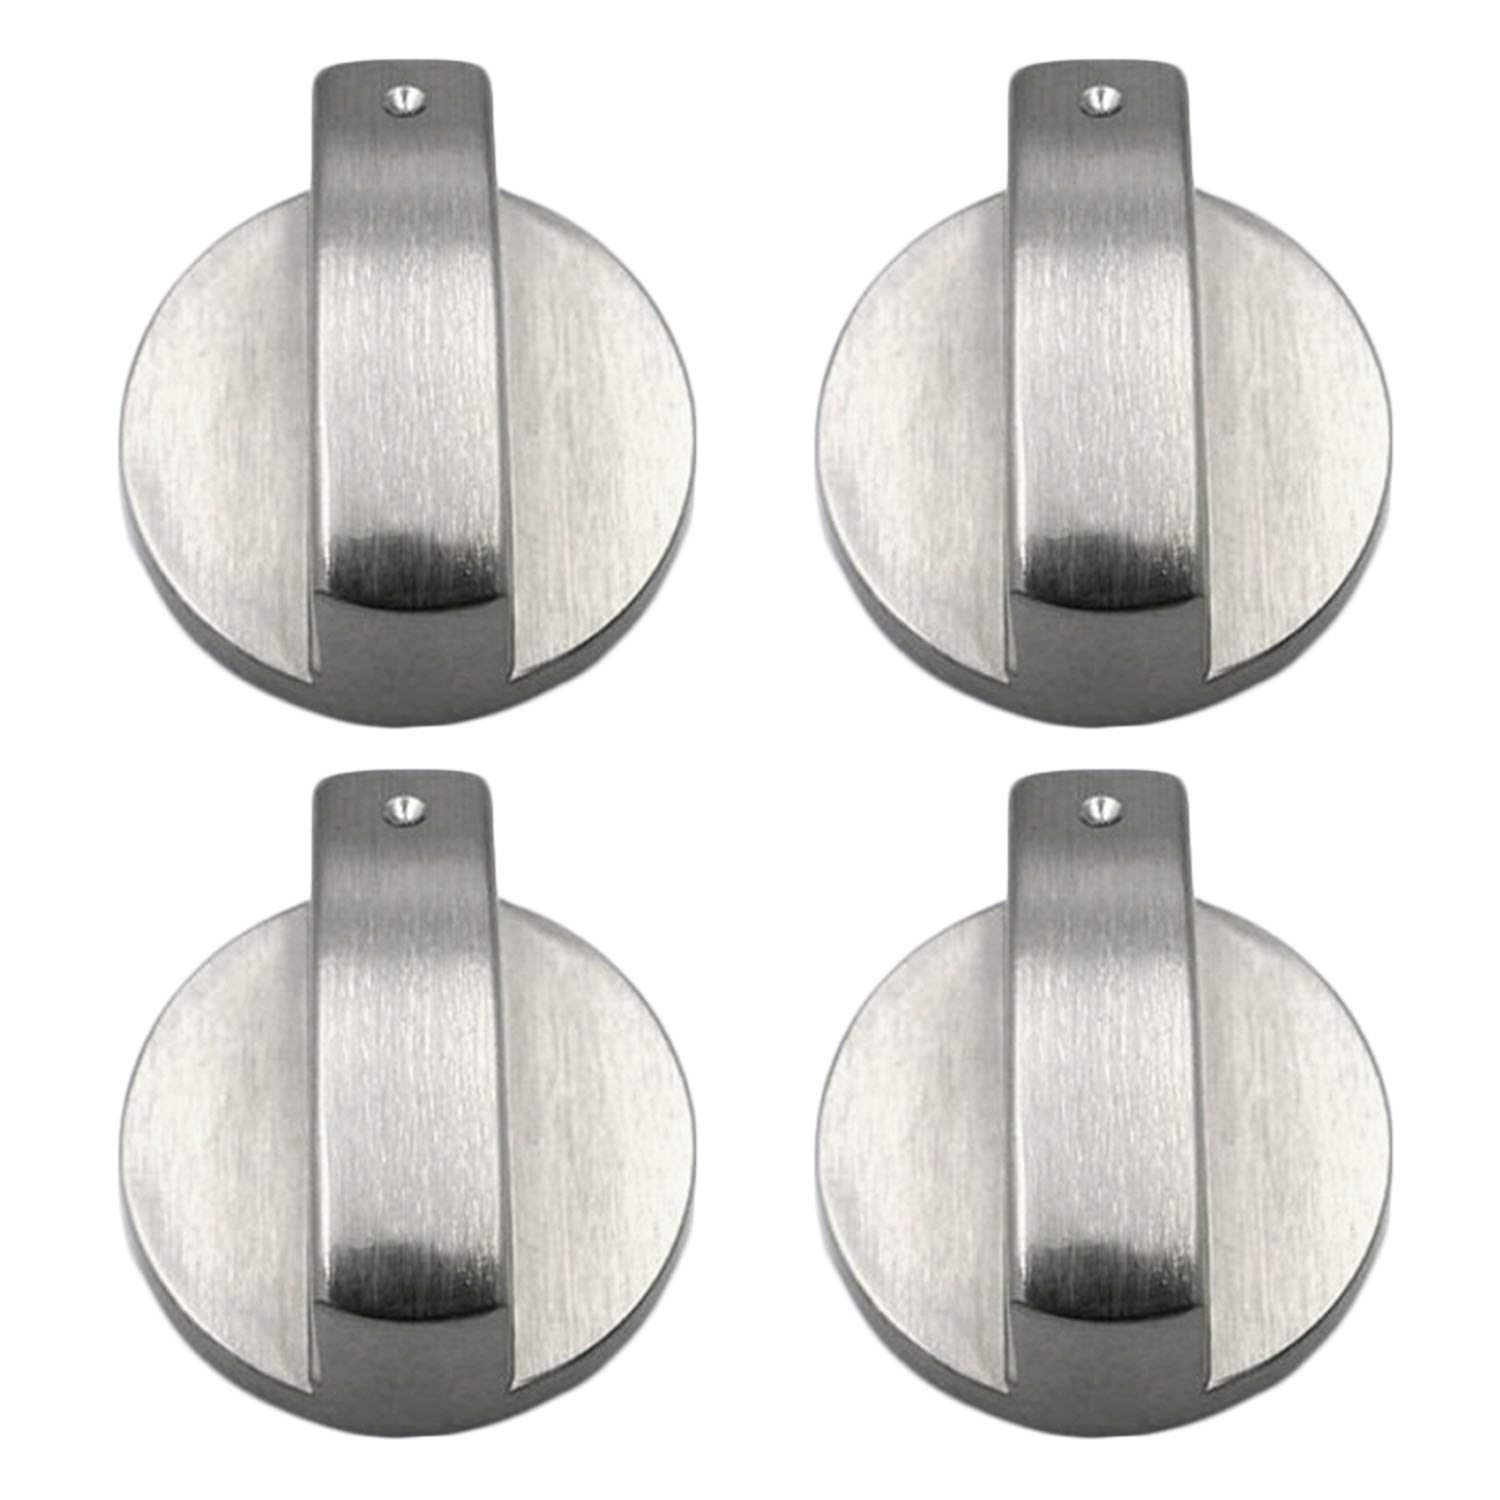 SIX UNIVERSAL for AEG Cooker Oven Hob SILVER Control Knobs with Thirty Adapters